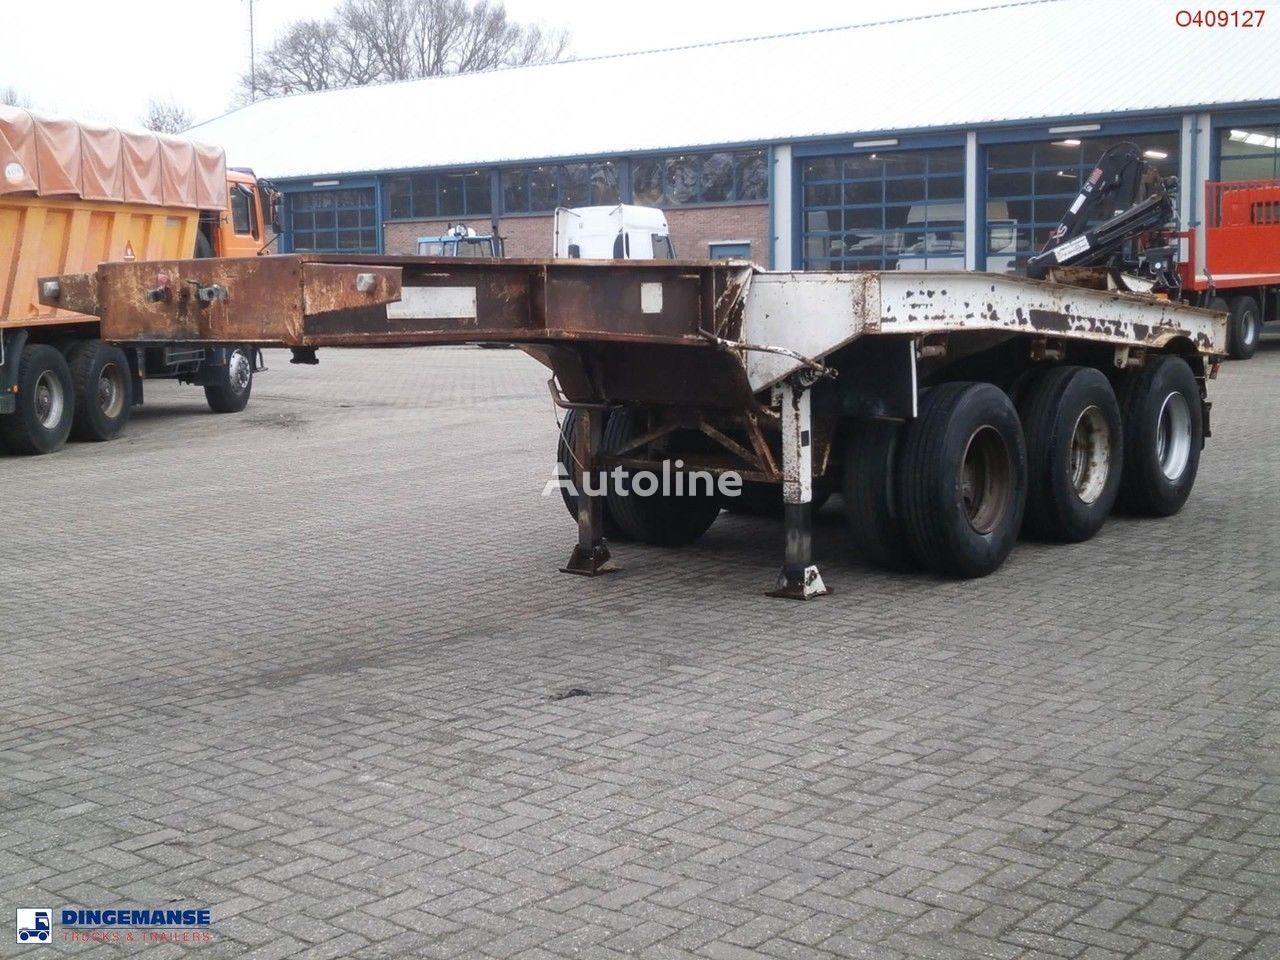 TRAYL-ONA 3-axle dolly trailer / 62000 kg semi-reboque porta-contentores